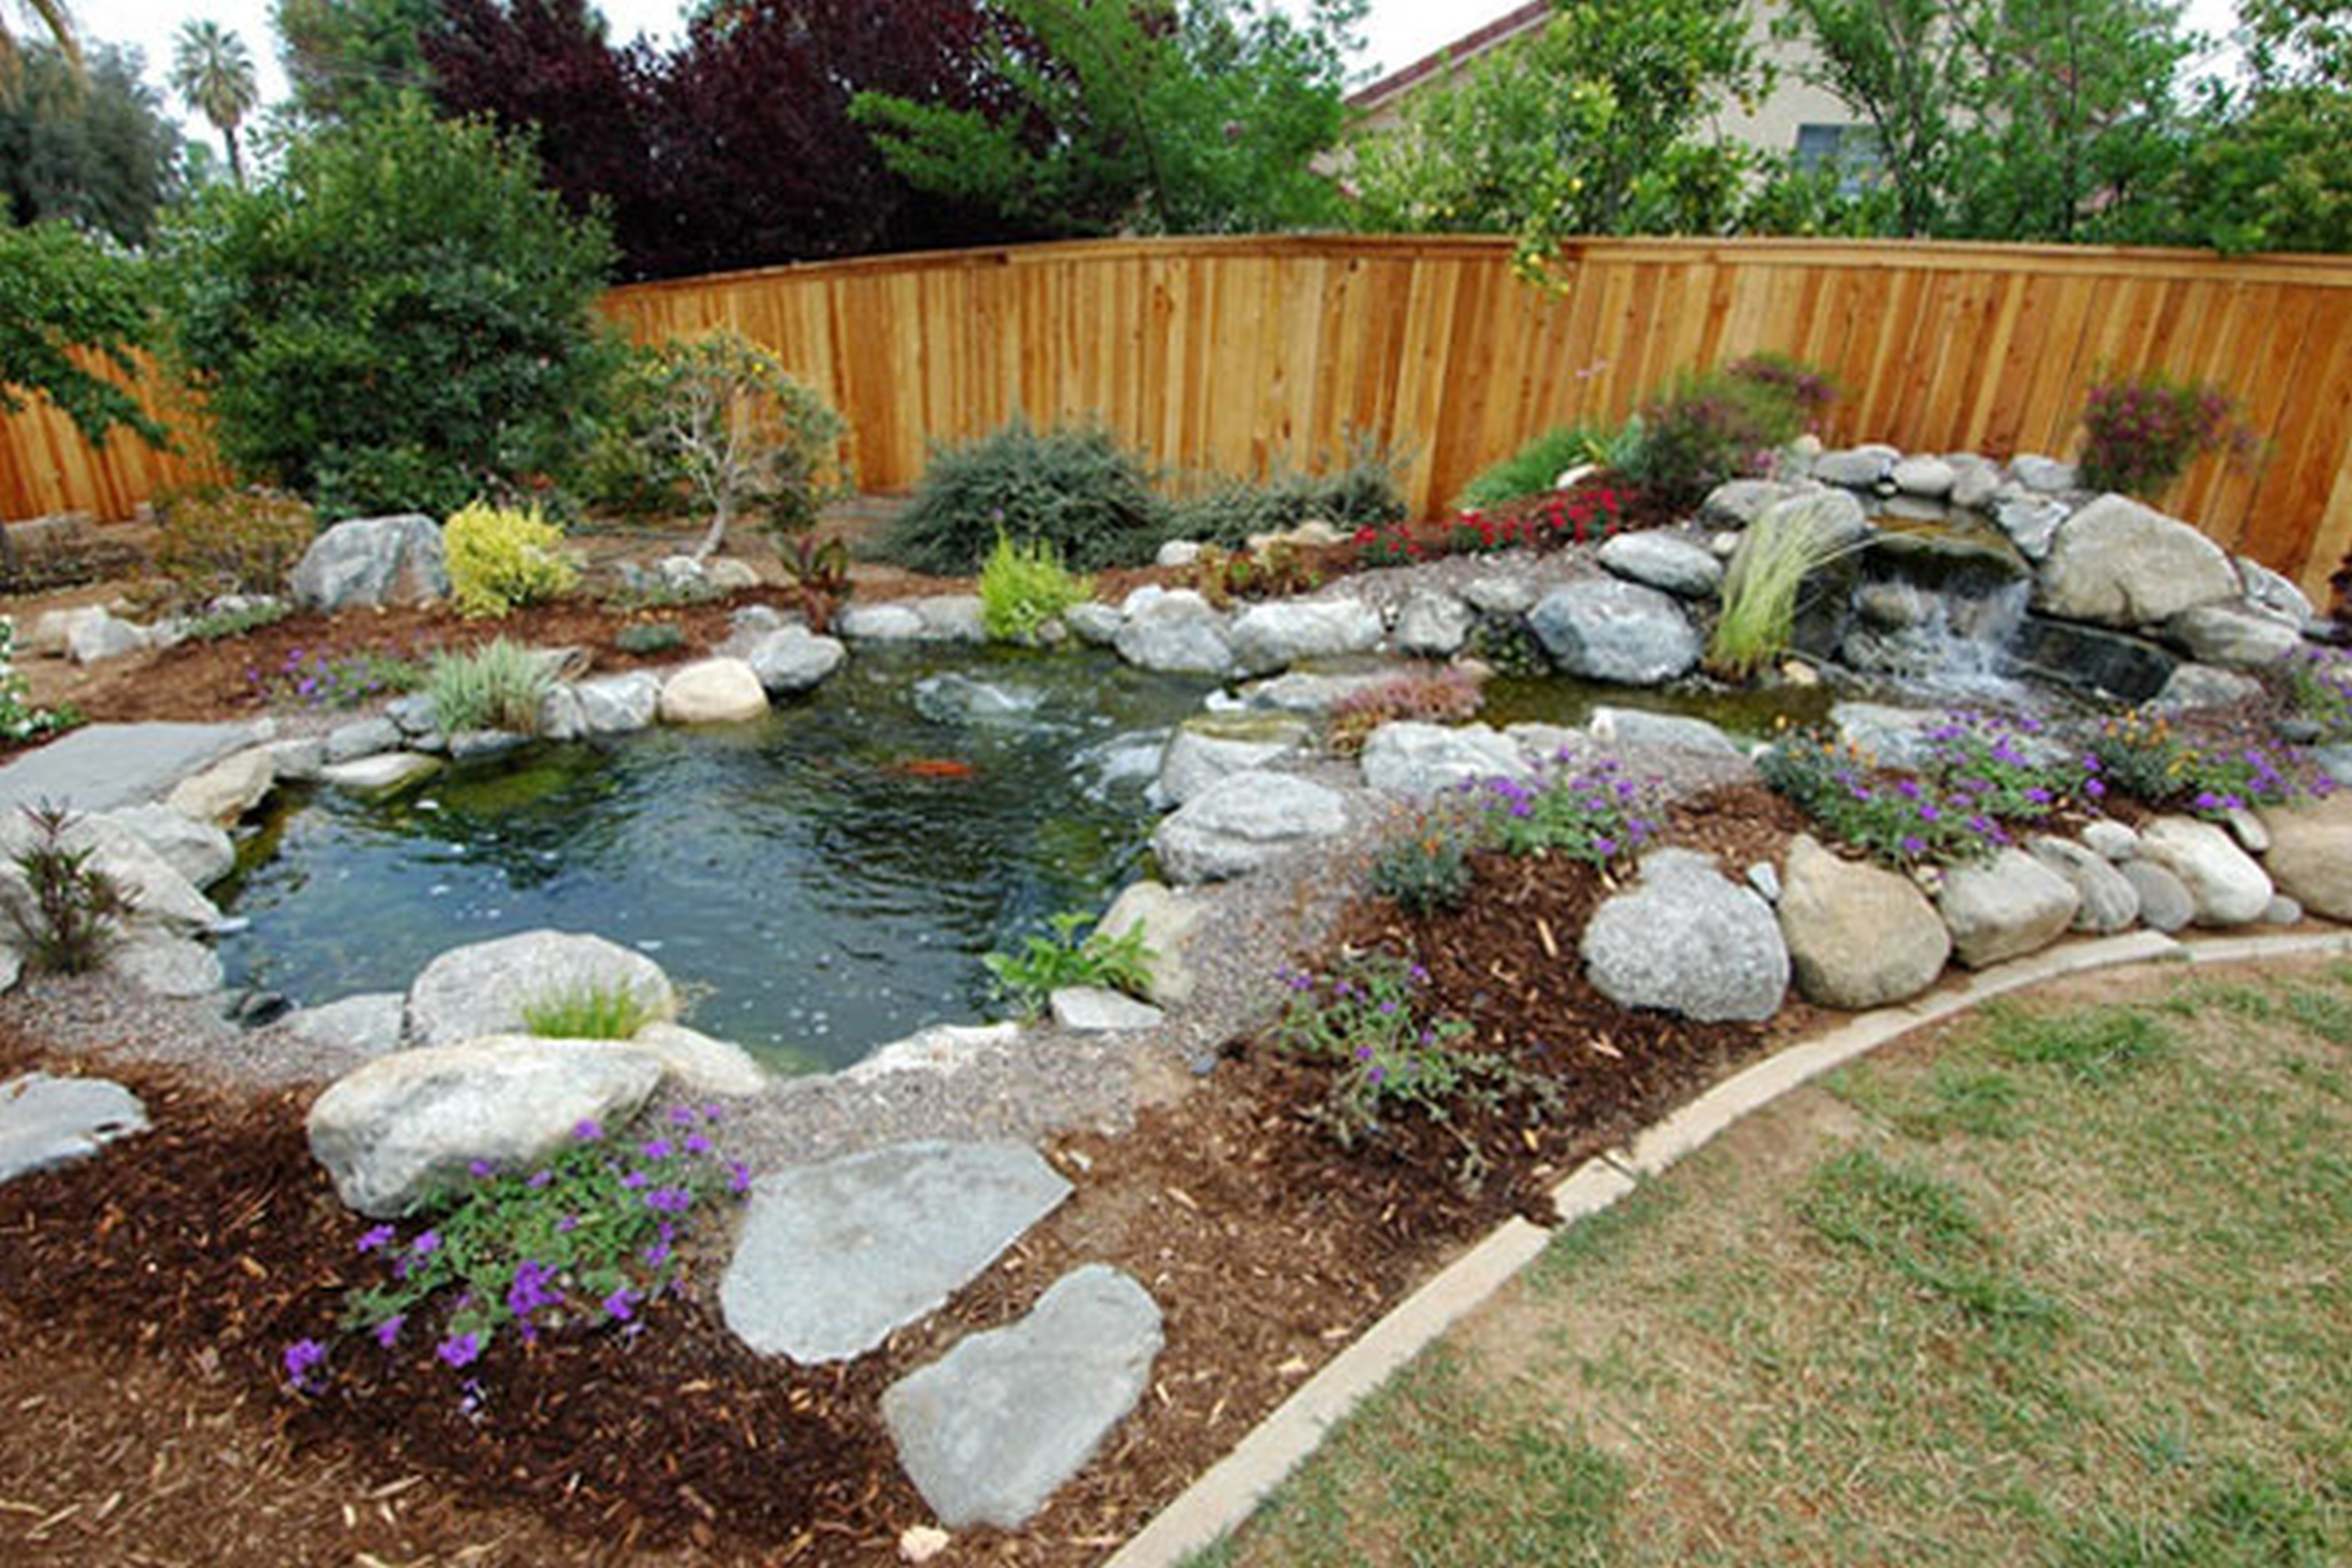 Backyard fire pit ideas landscaping backyard for Outdoor fish ponds designs